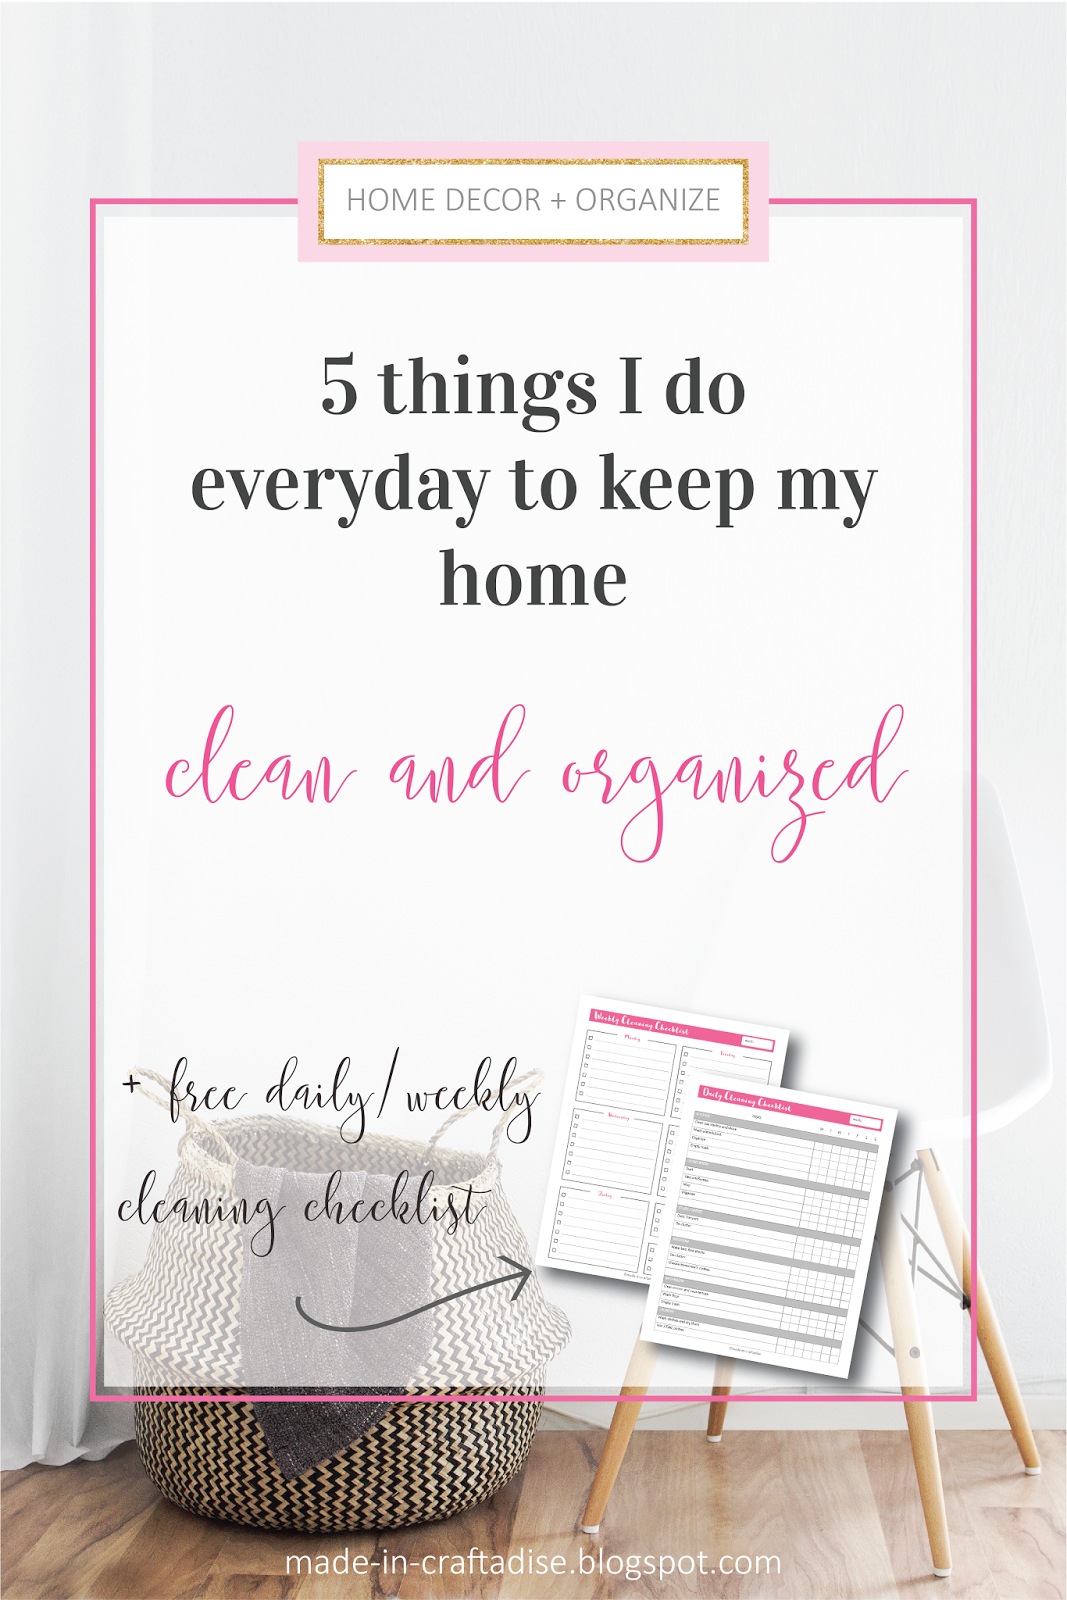 5 things I do everyday to keep my home clean and organized + free daily / weekly cleaning checklist